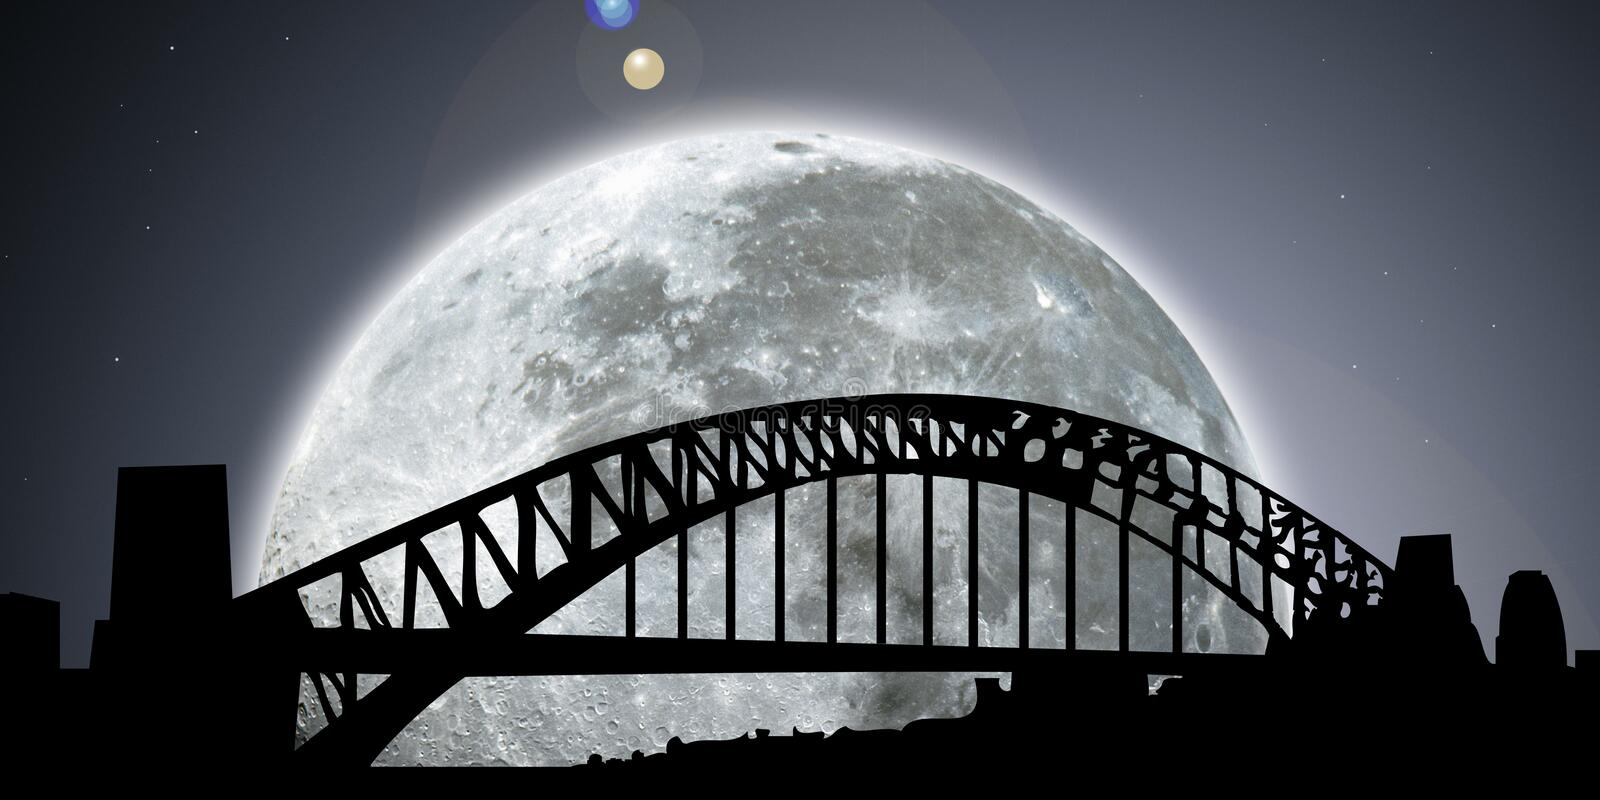 horizon Sydney de nuit de lune illustration stock